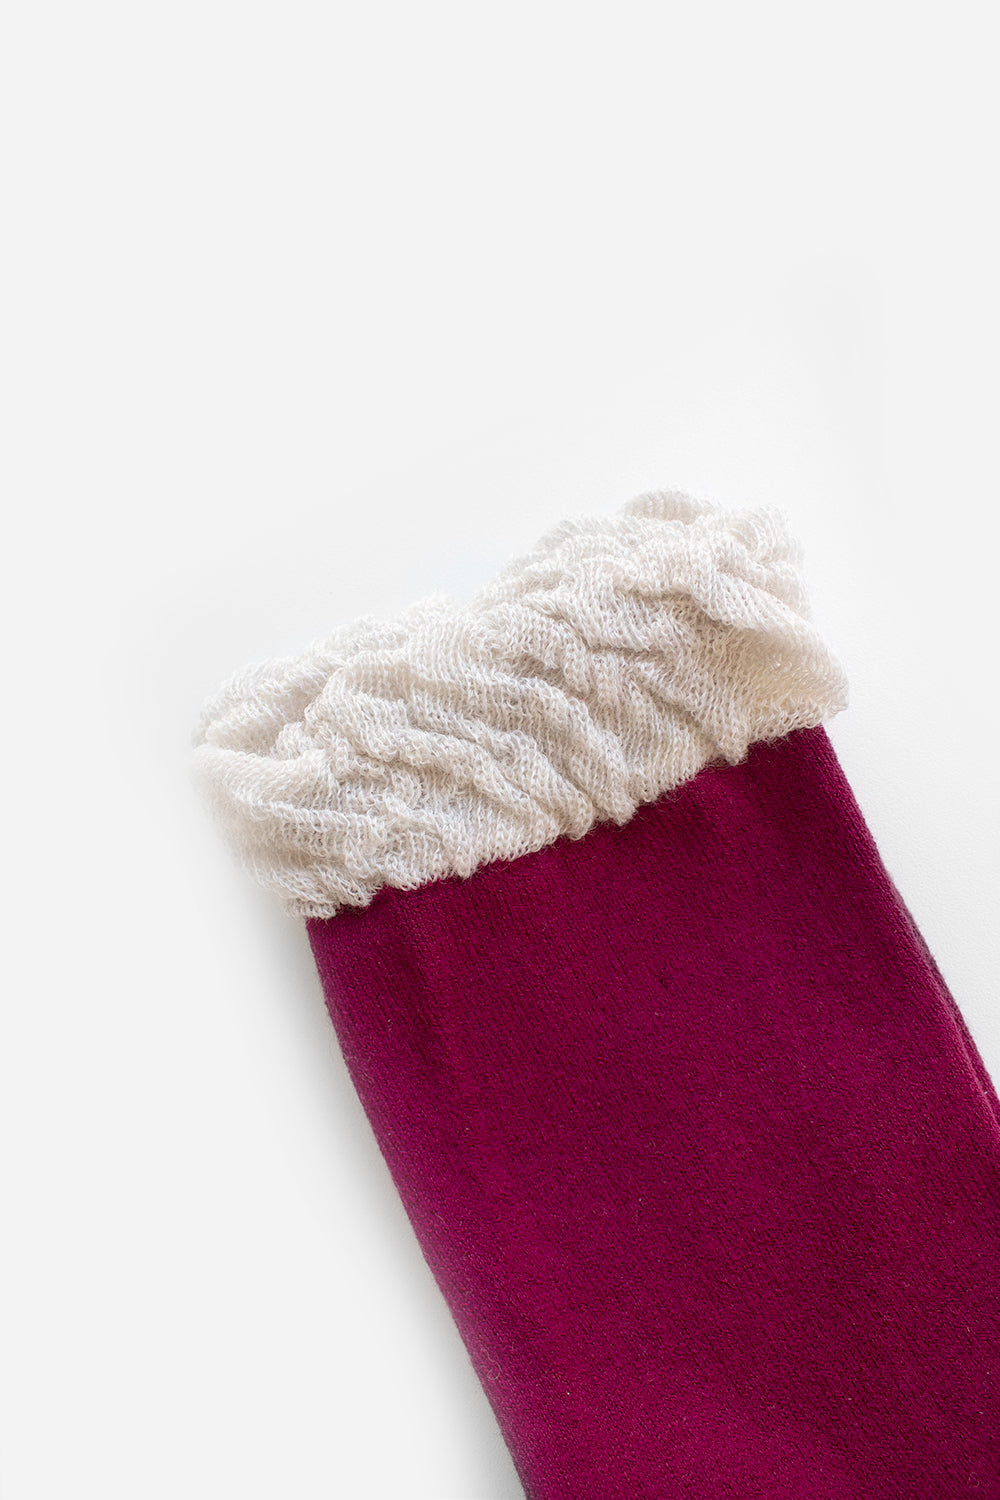 Wool and Cotton Socks with Ruffle, Wine